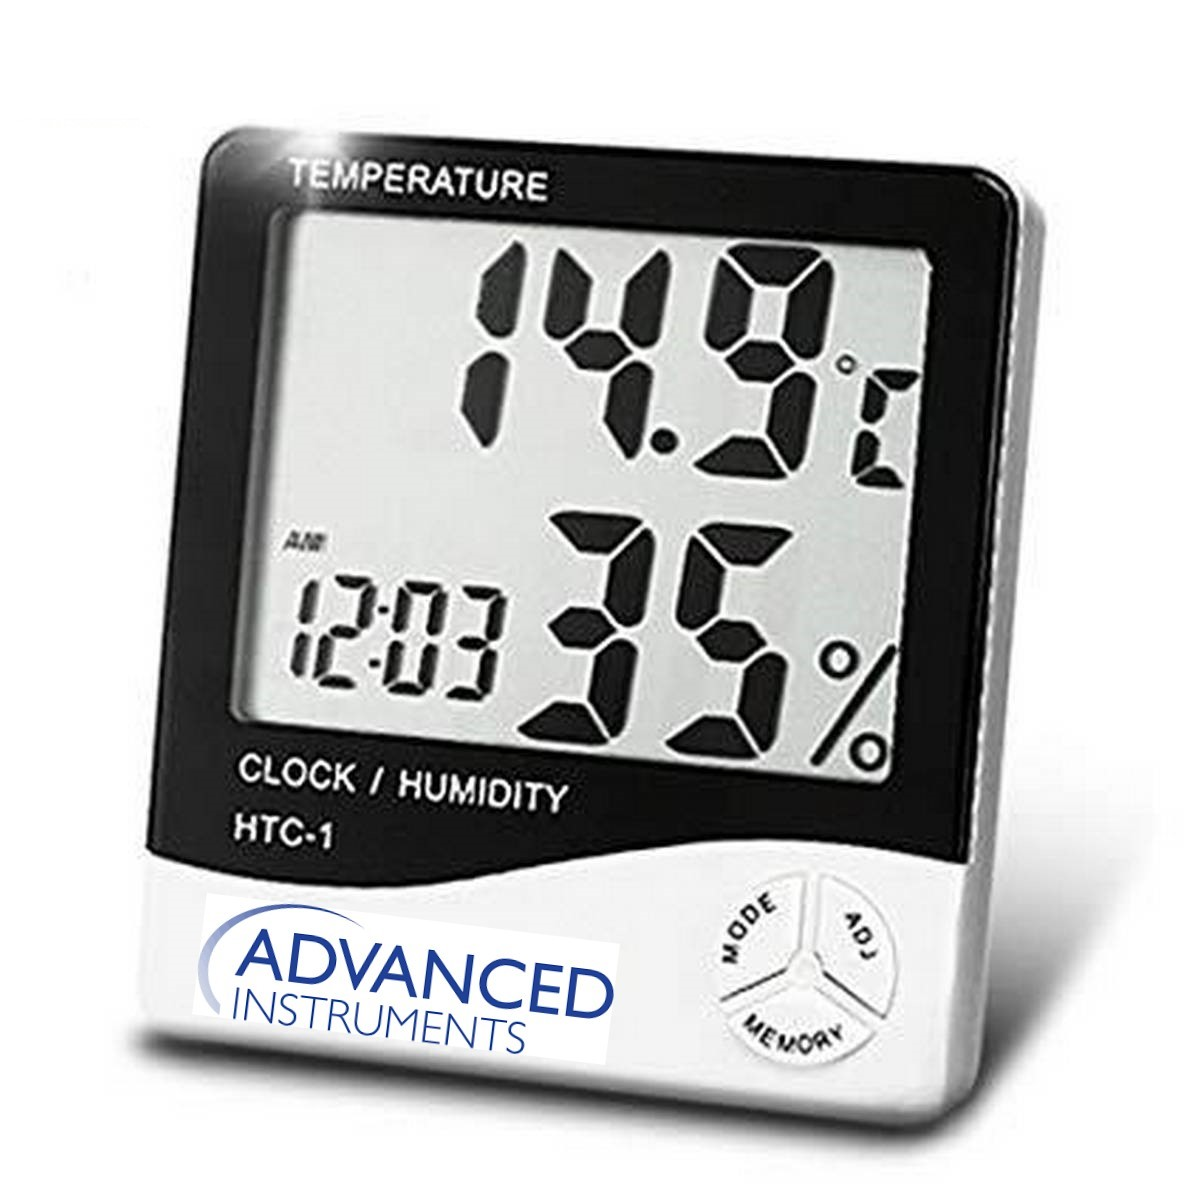 Advanced Instruments HTC-1 Electronic Temperature Humidity Meter, For Medical Indoor Room LCD Digital Thermometer Hygrometer Weather Station Alarm Clock